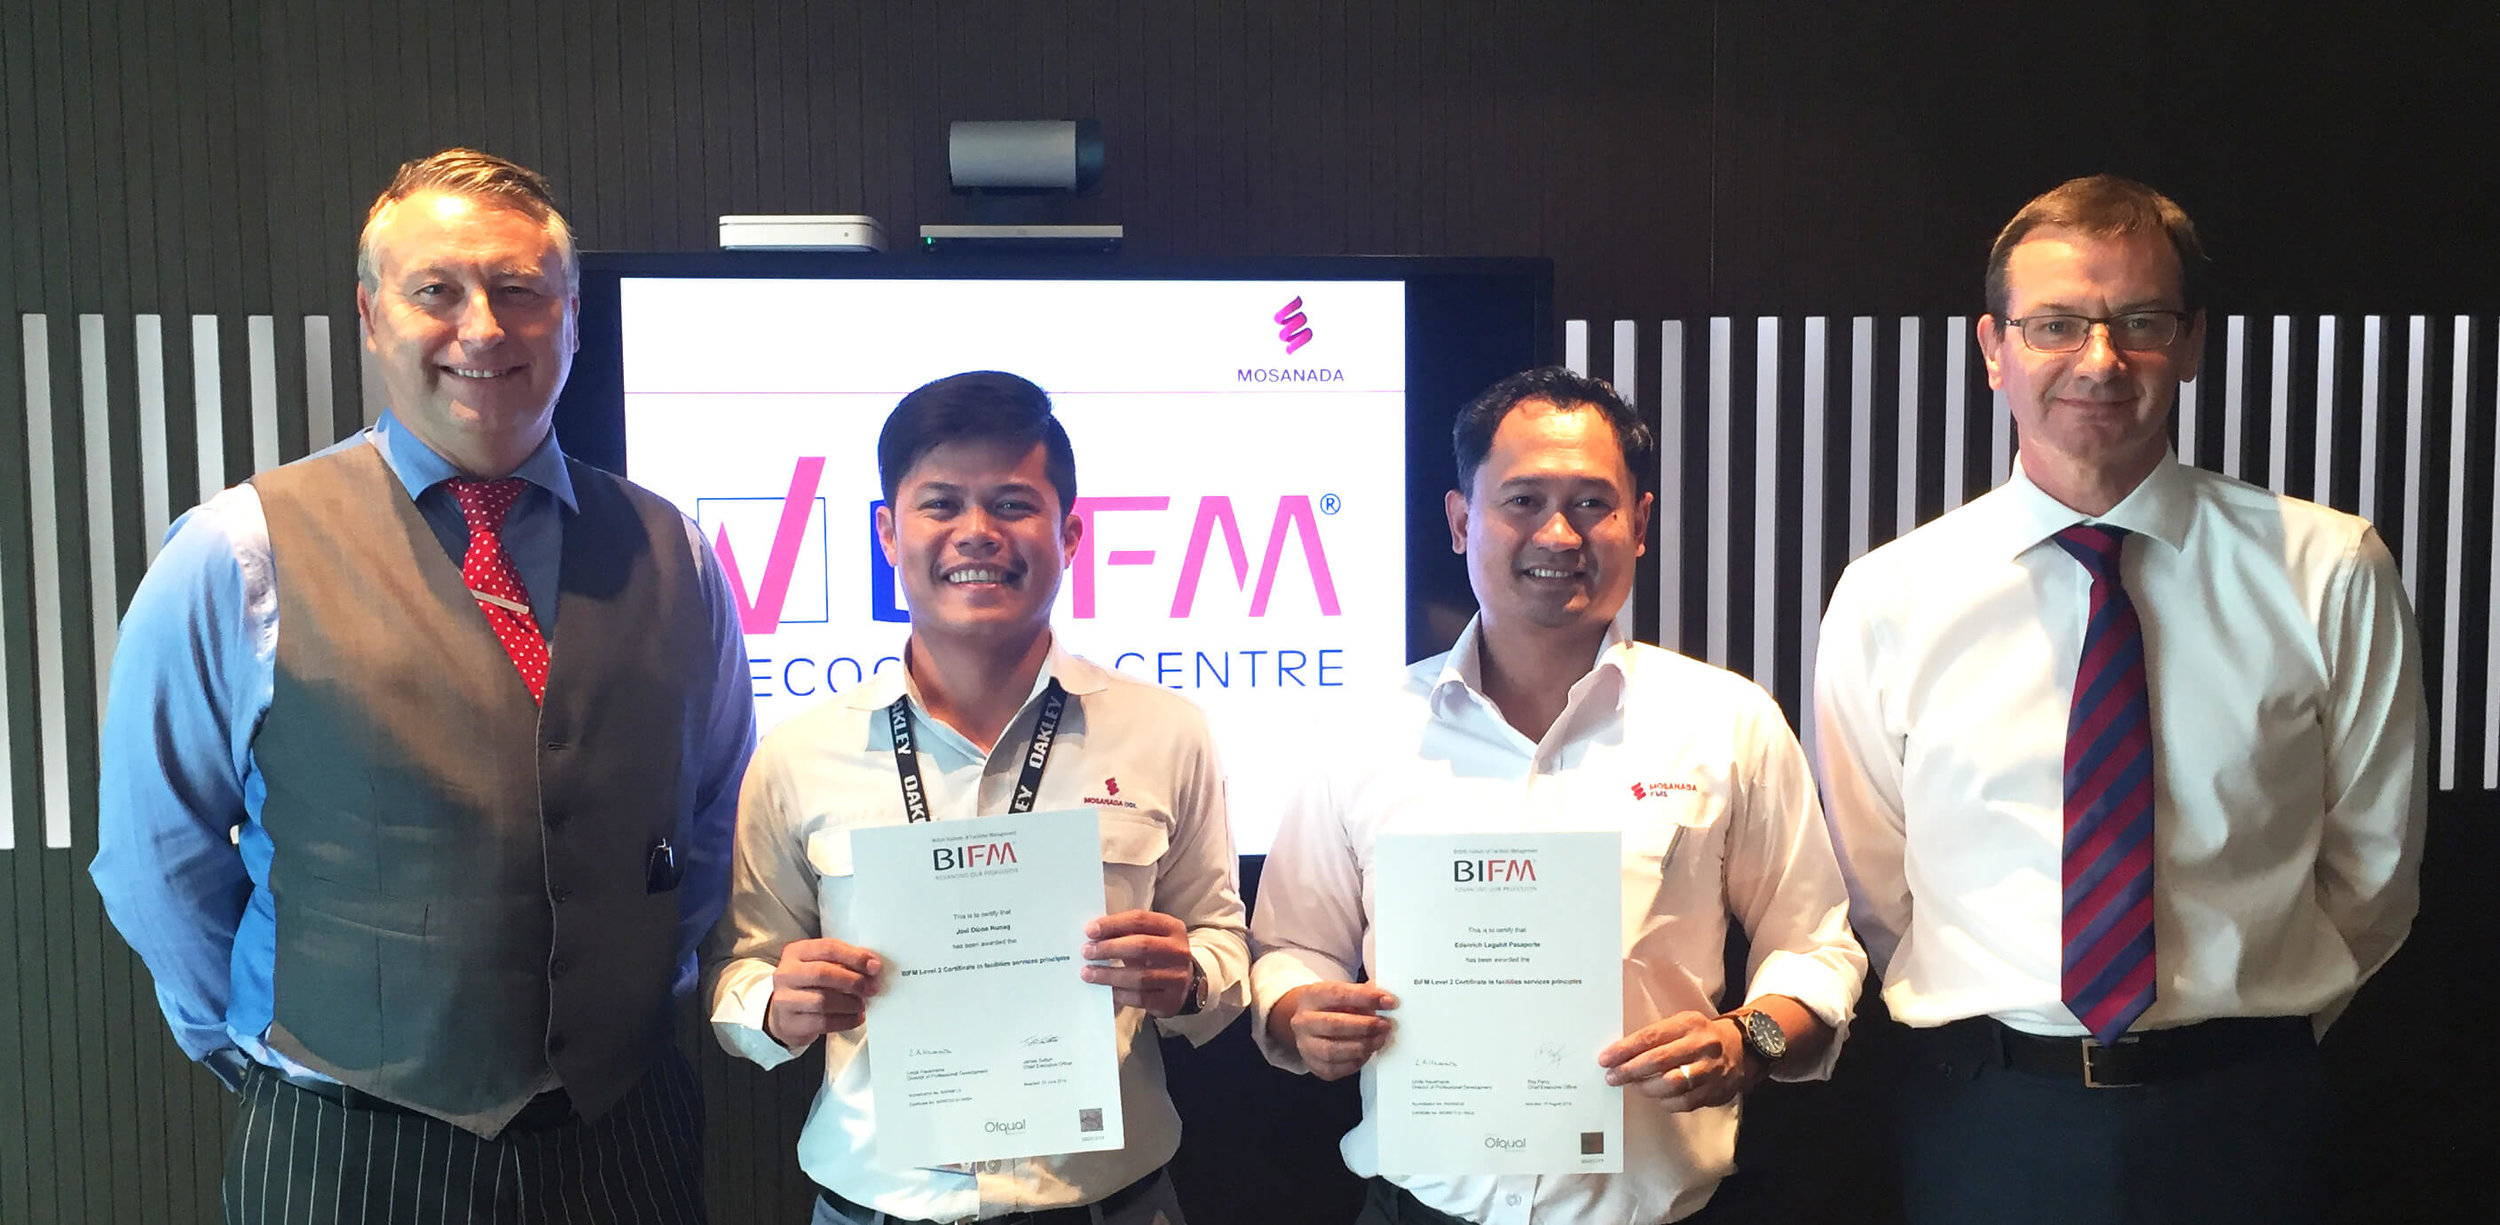 From Left: Julian Burton, BIFM assessor with BIFM Graduates Joel Nunag, and Edanrich Pasaporte, and Martin Campbell Director of Business Solutions.